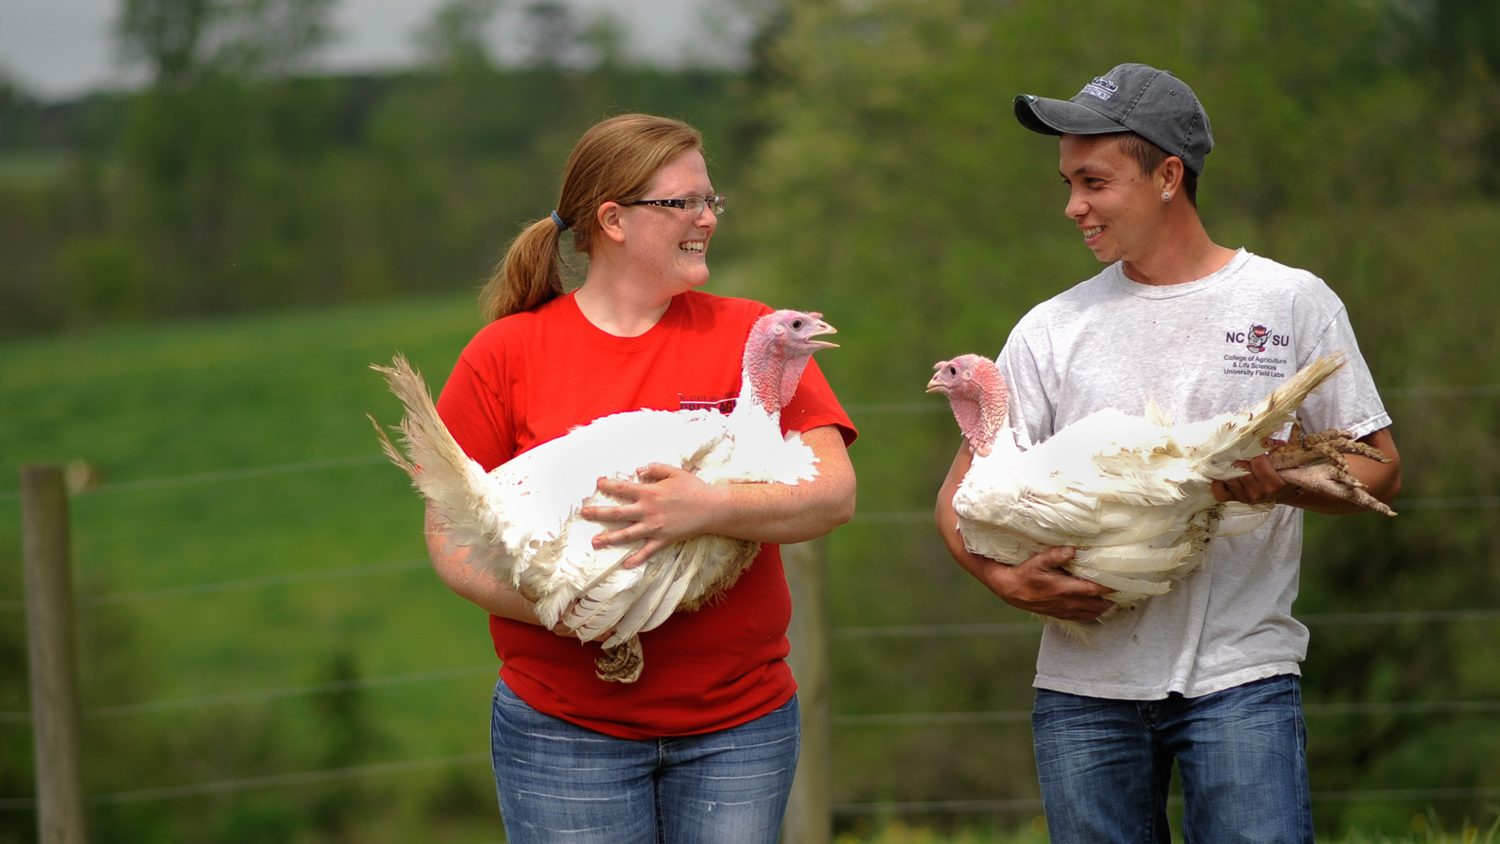 Two students holding turkeys.